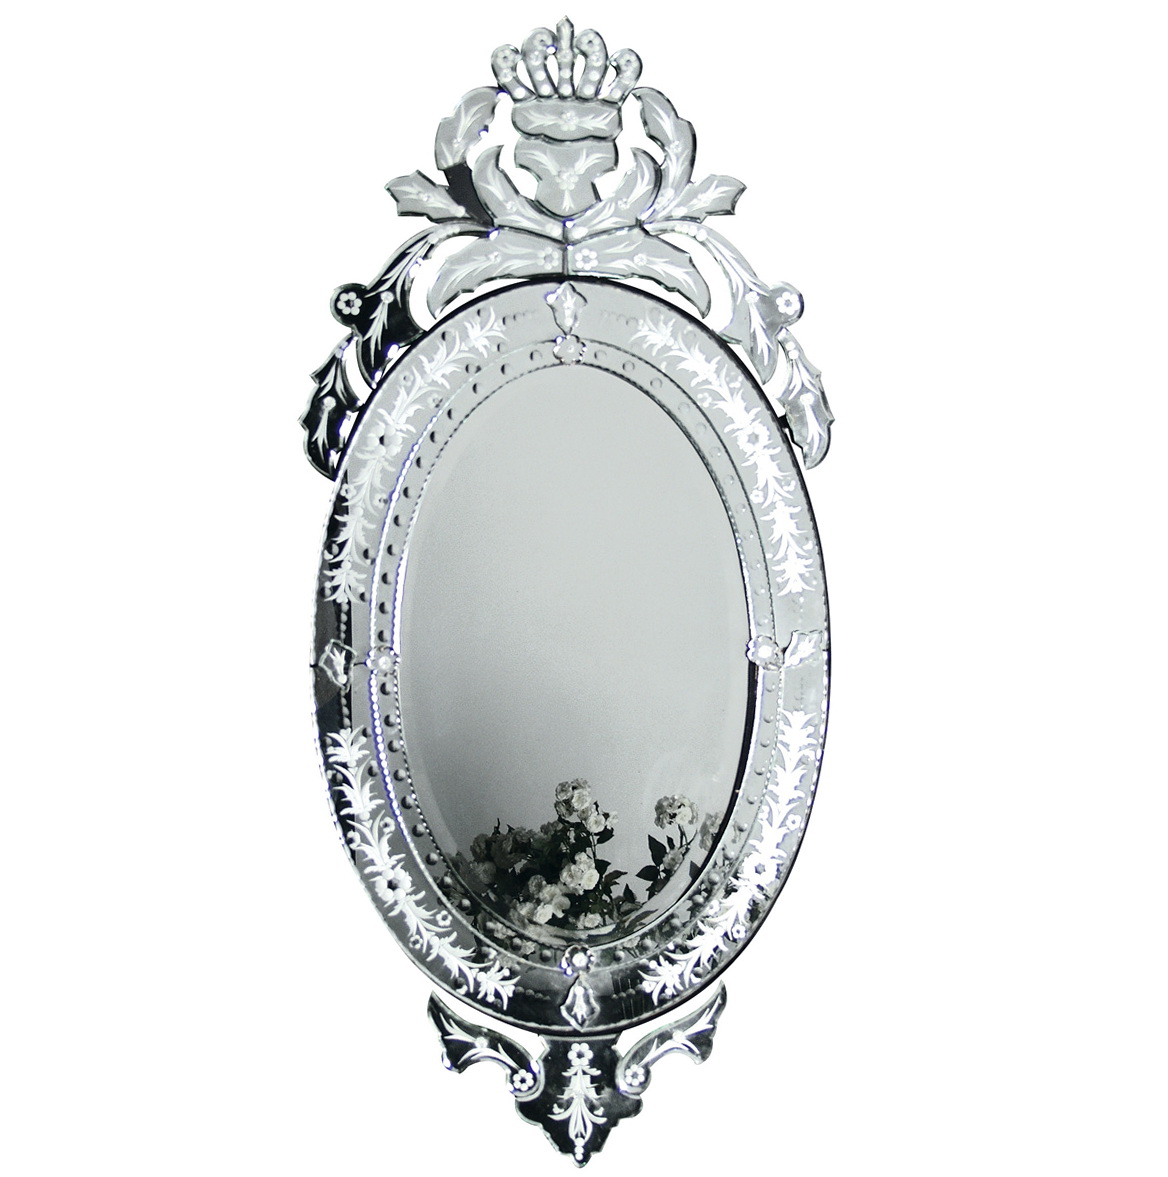 Small Venetian Wall Mirrors